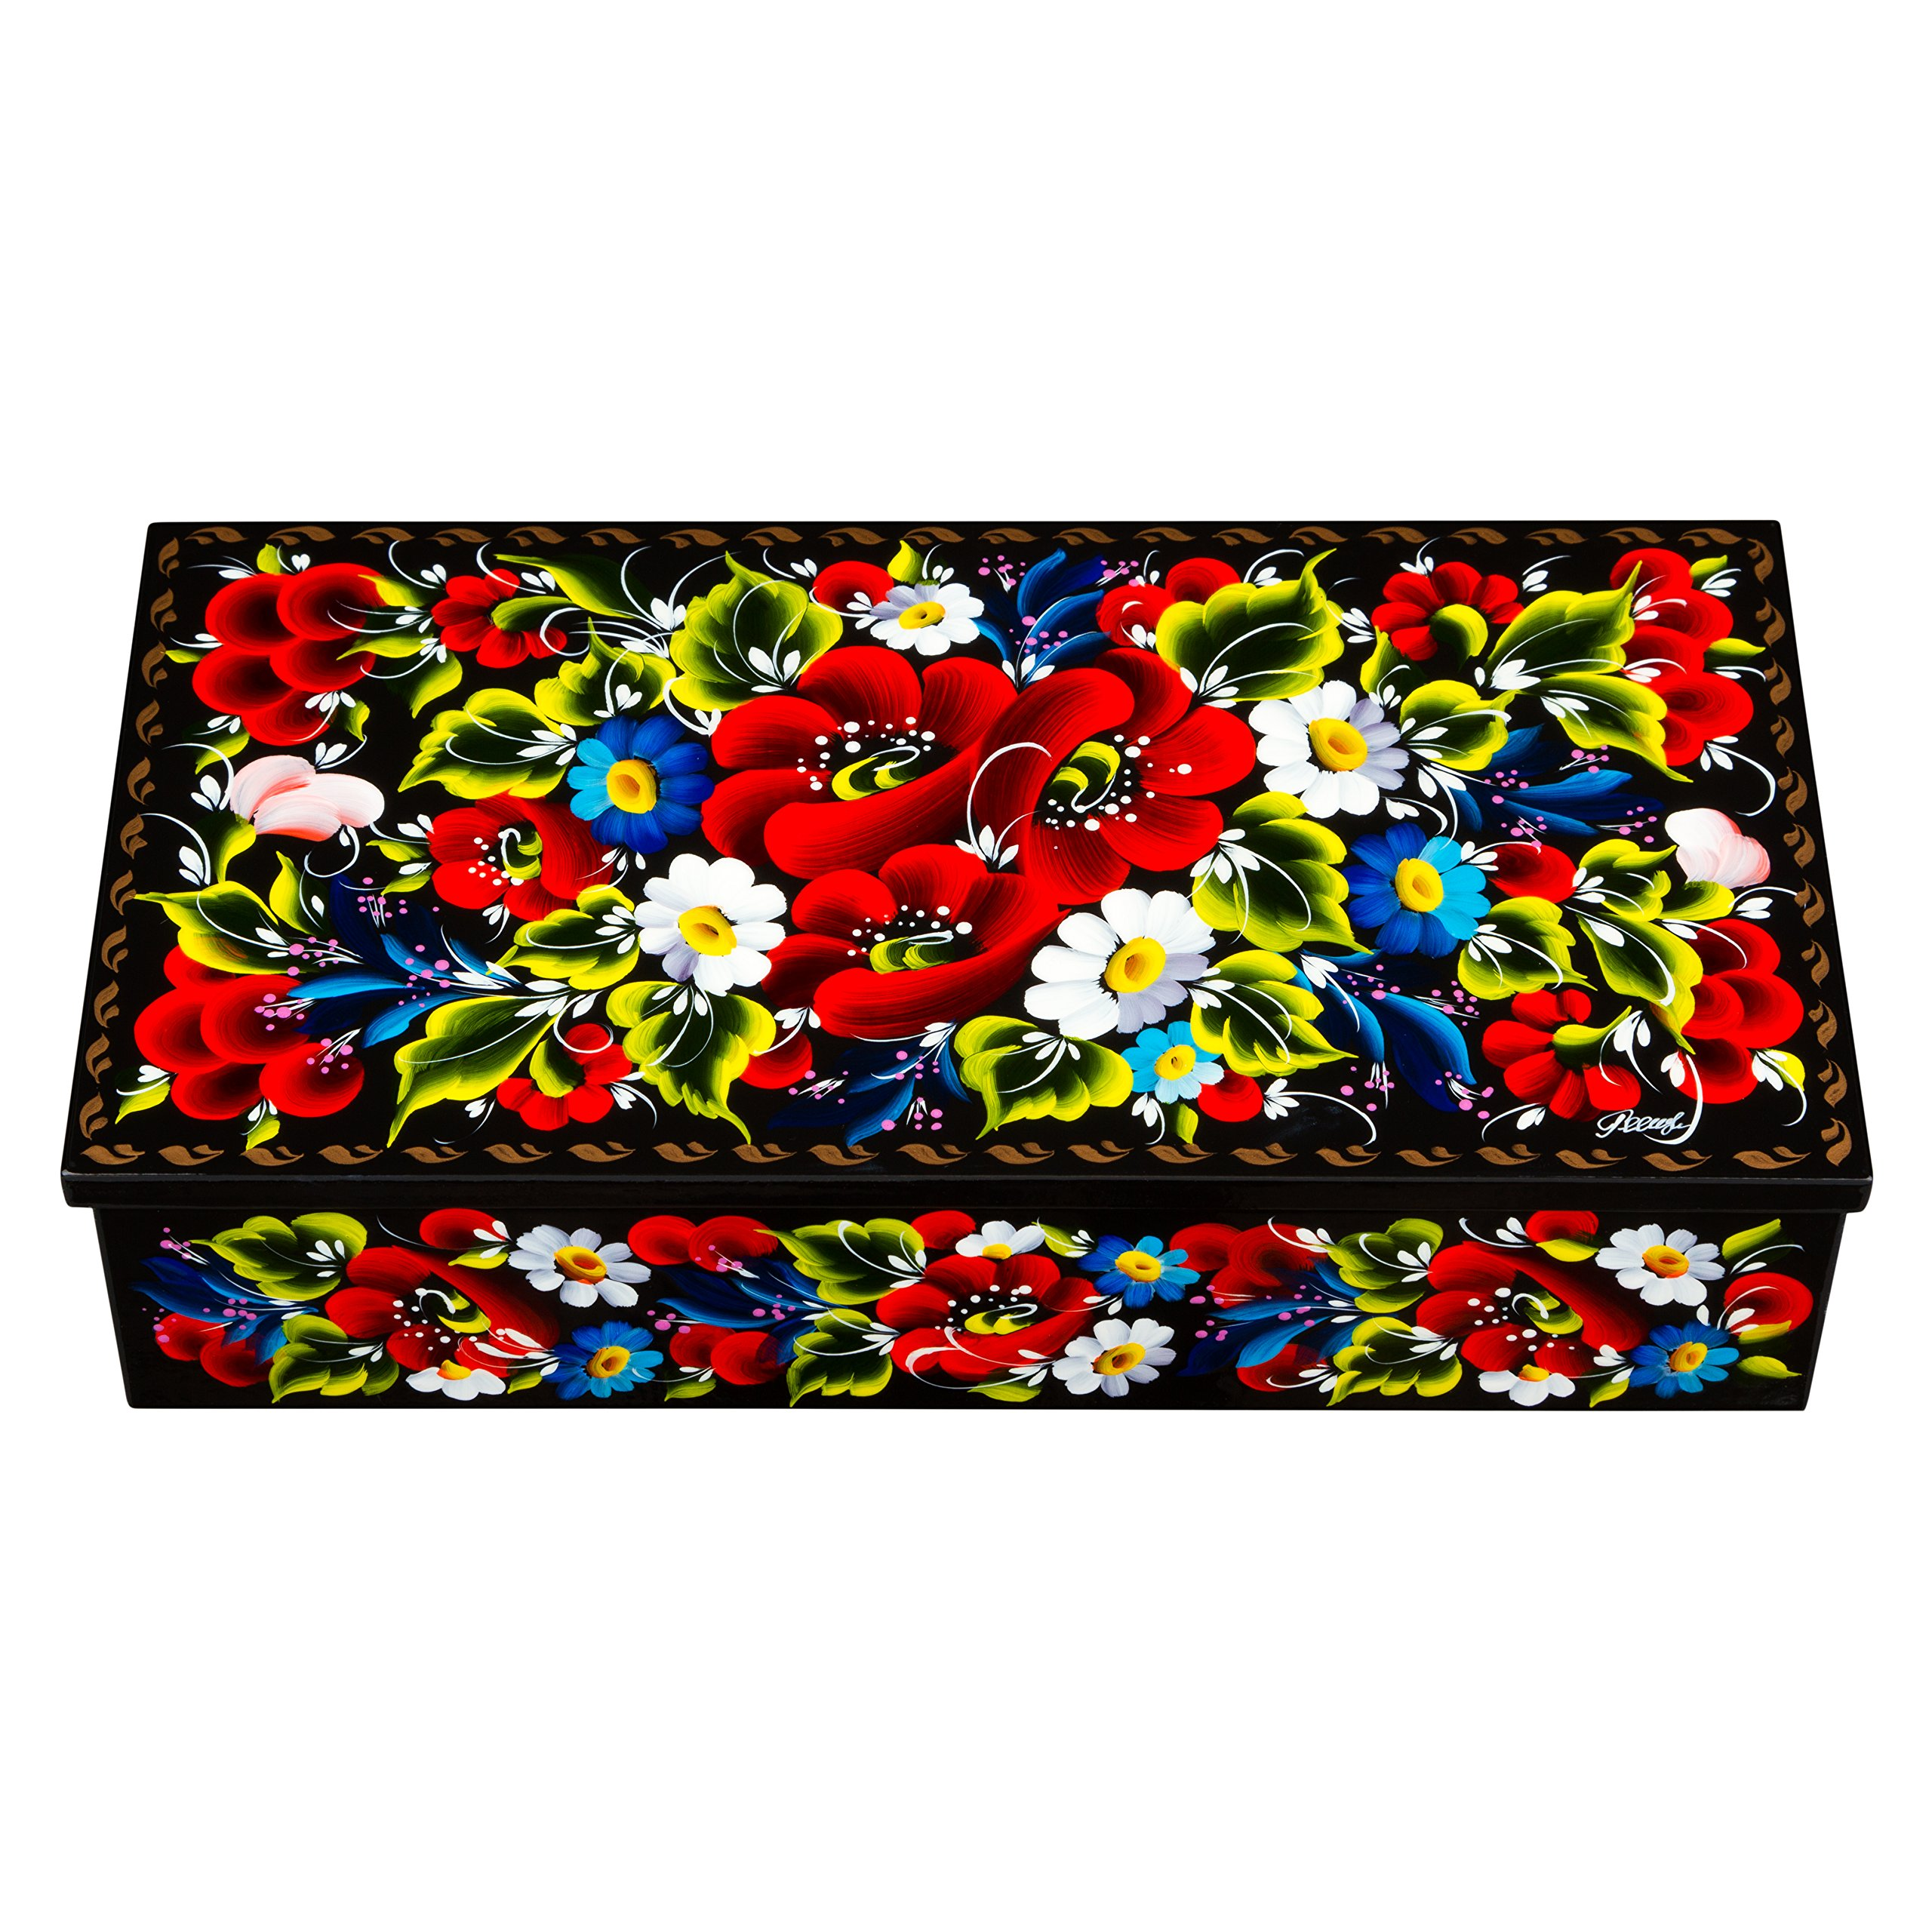 UA Creations Petrykiv Ethnic Rectangular Lacquered Wooden Jewelry Box with Lid, Hand Painted Flowers on Black, Beautiful Floral Design Gift for Girls and Women (red and Blue)